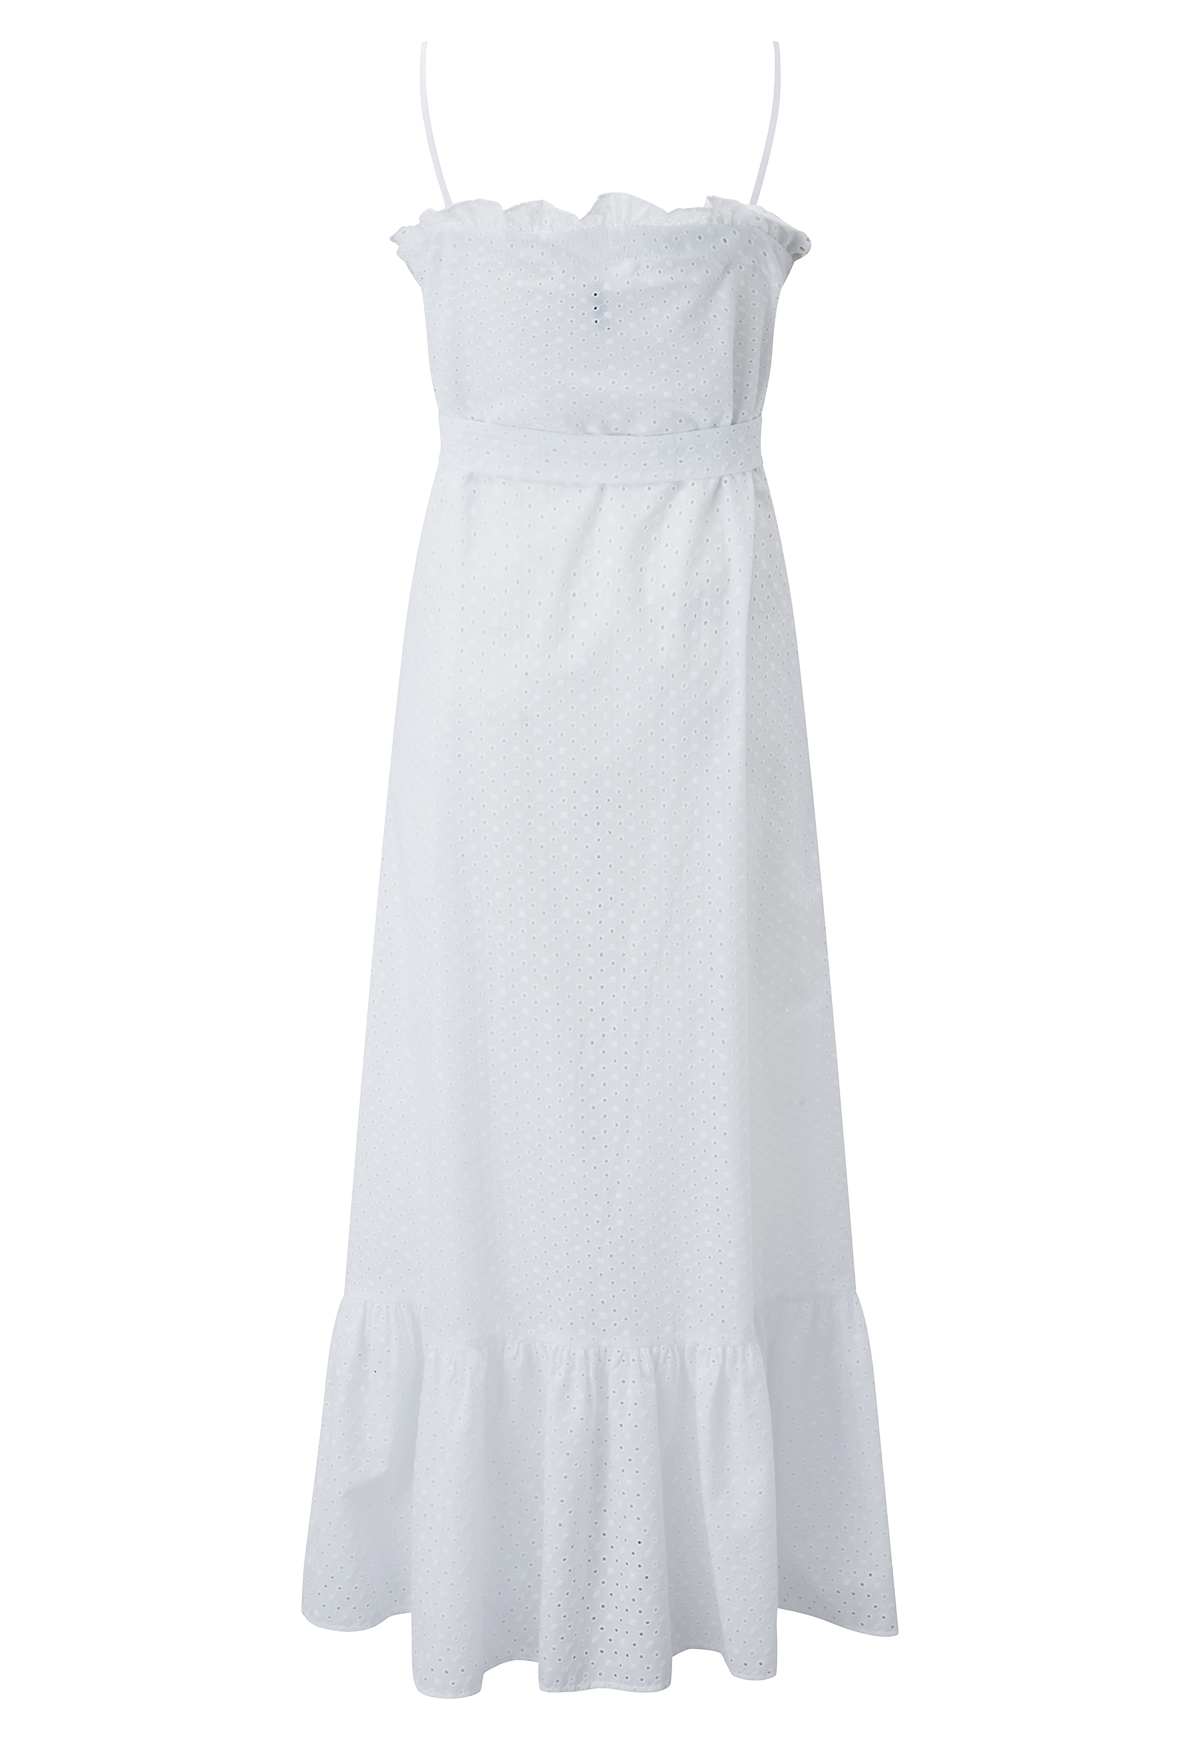 WHITE EYELET SLIP DRESS